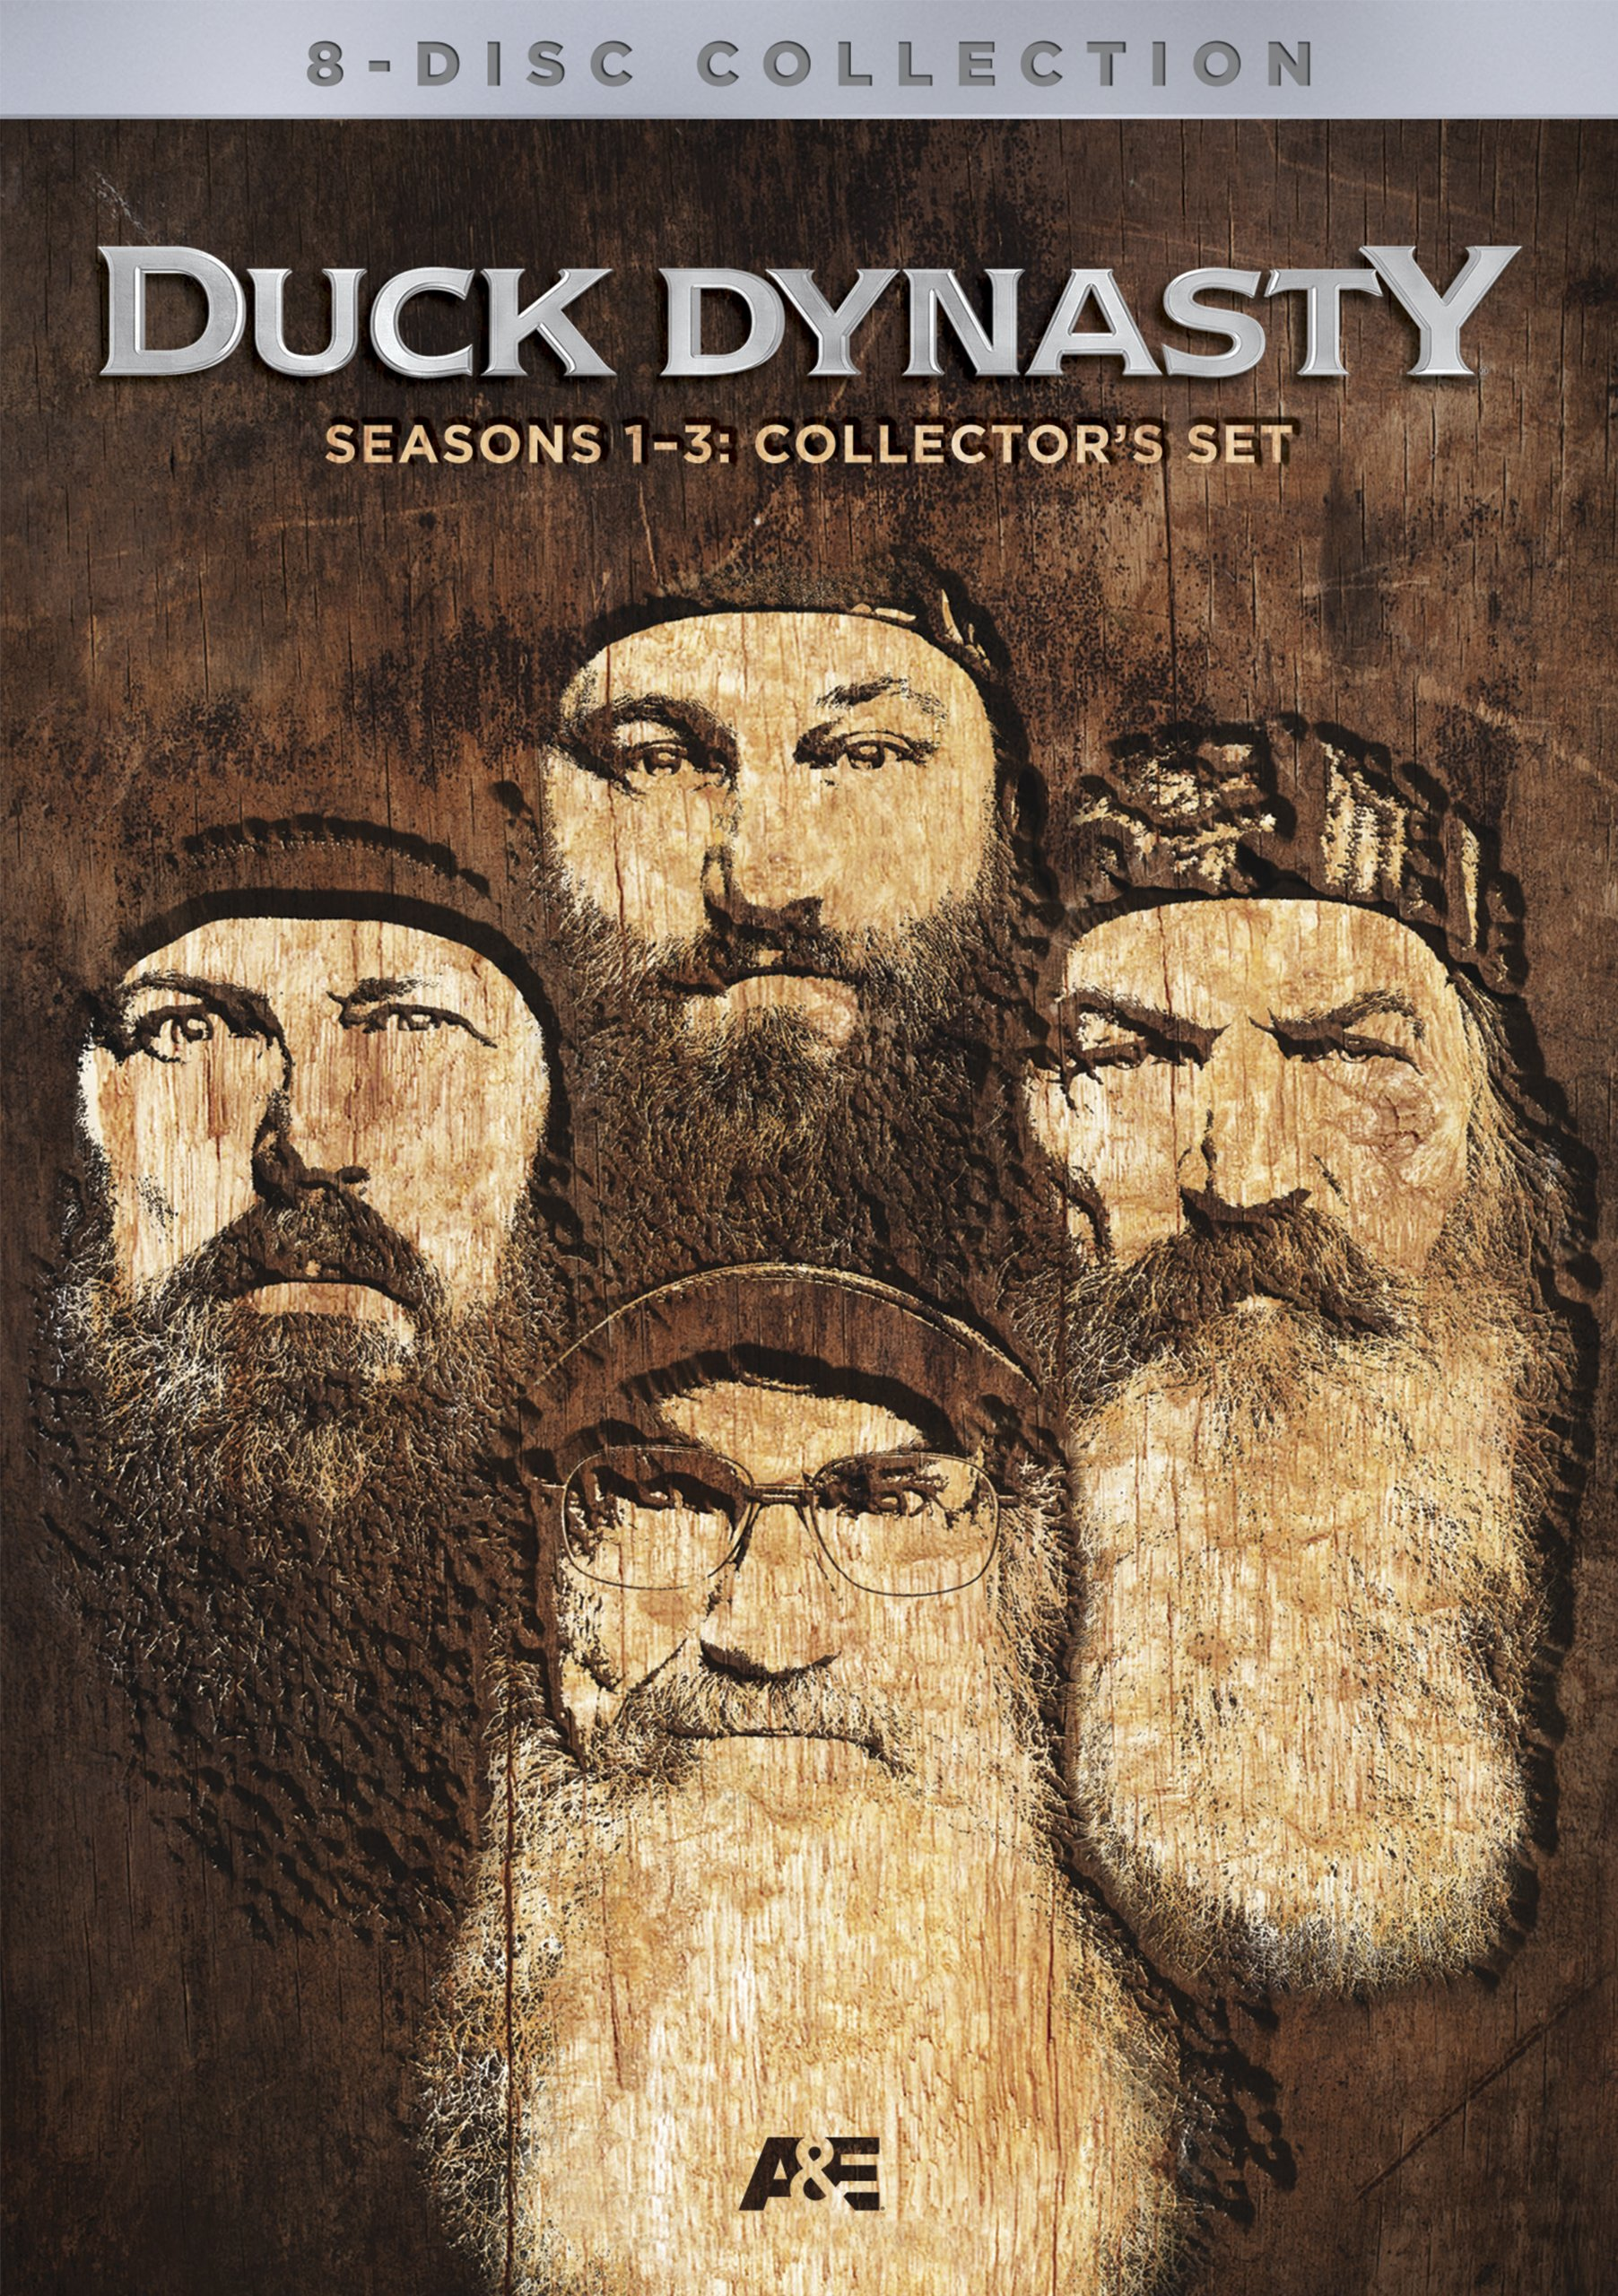 DVD : Duck Dynasty: Seasons 1-3 Collectors Set (Limited Edition, Boxed Set, Full Frame, Collector's Edition, Dolby)